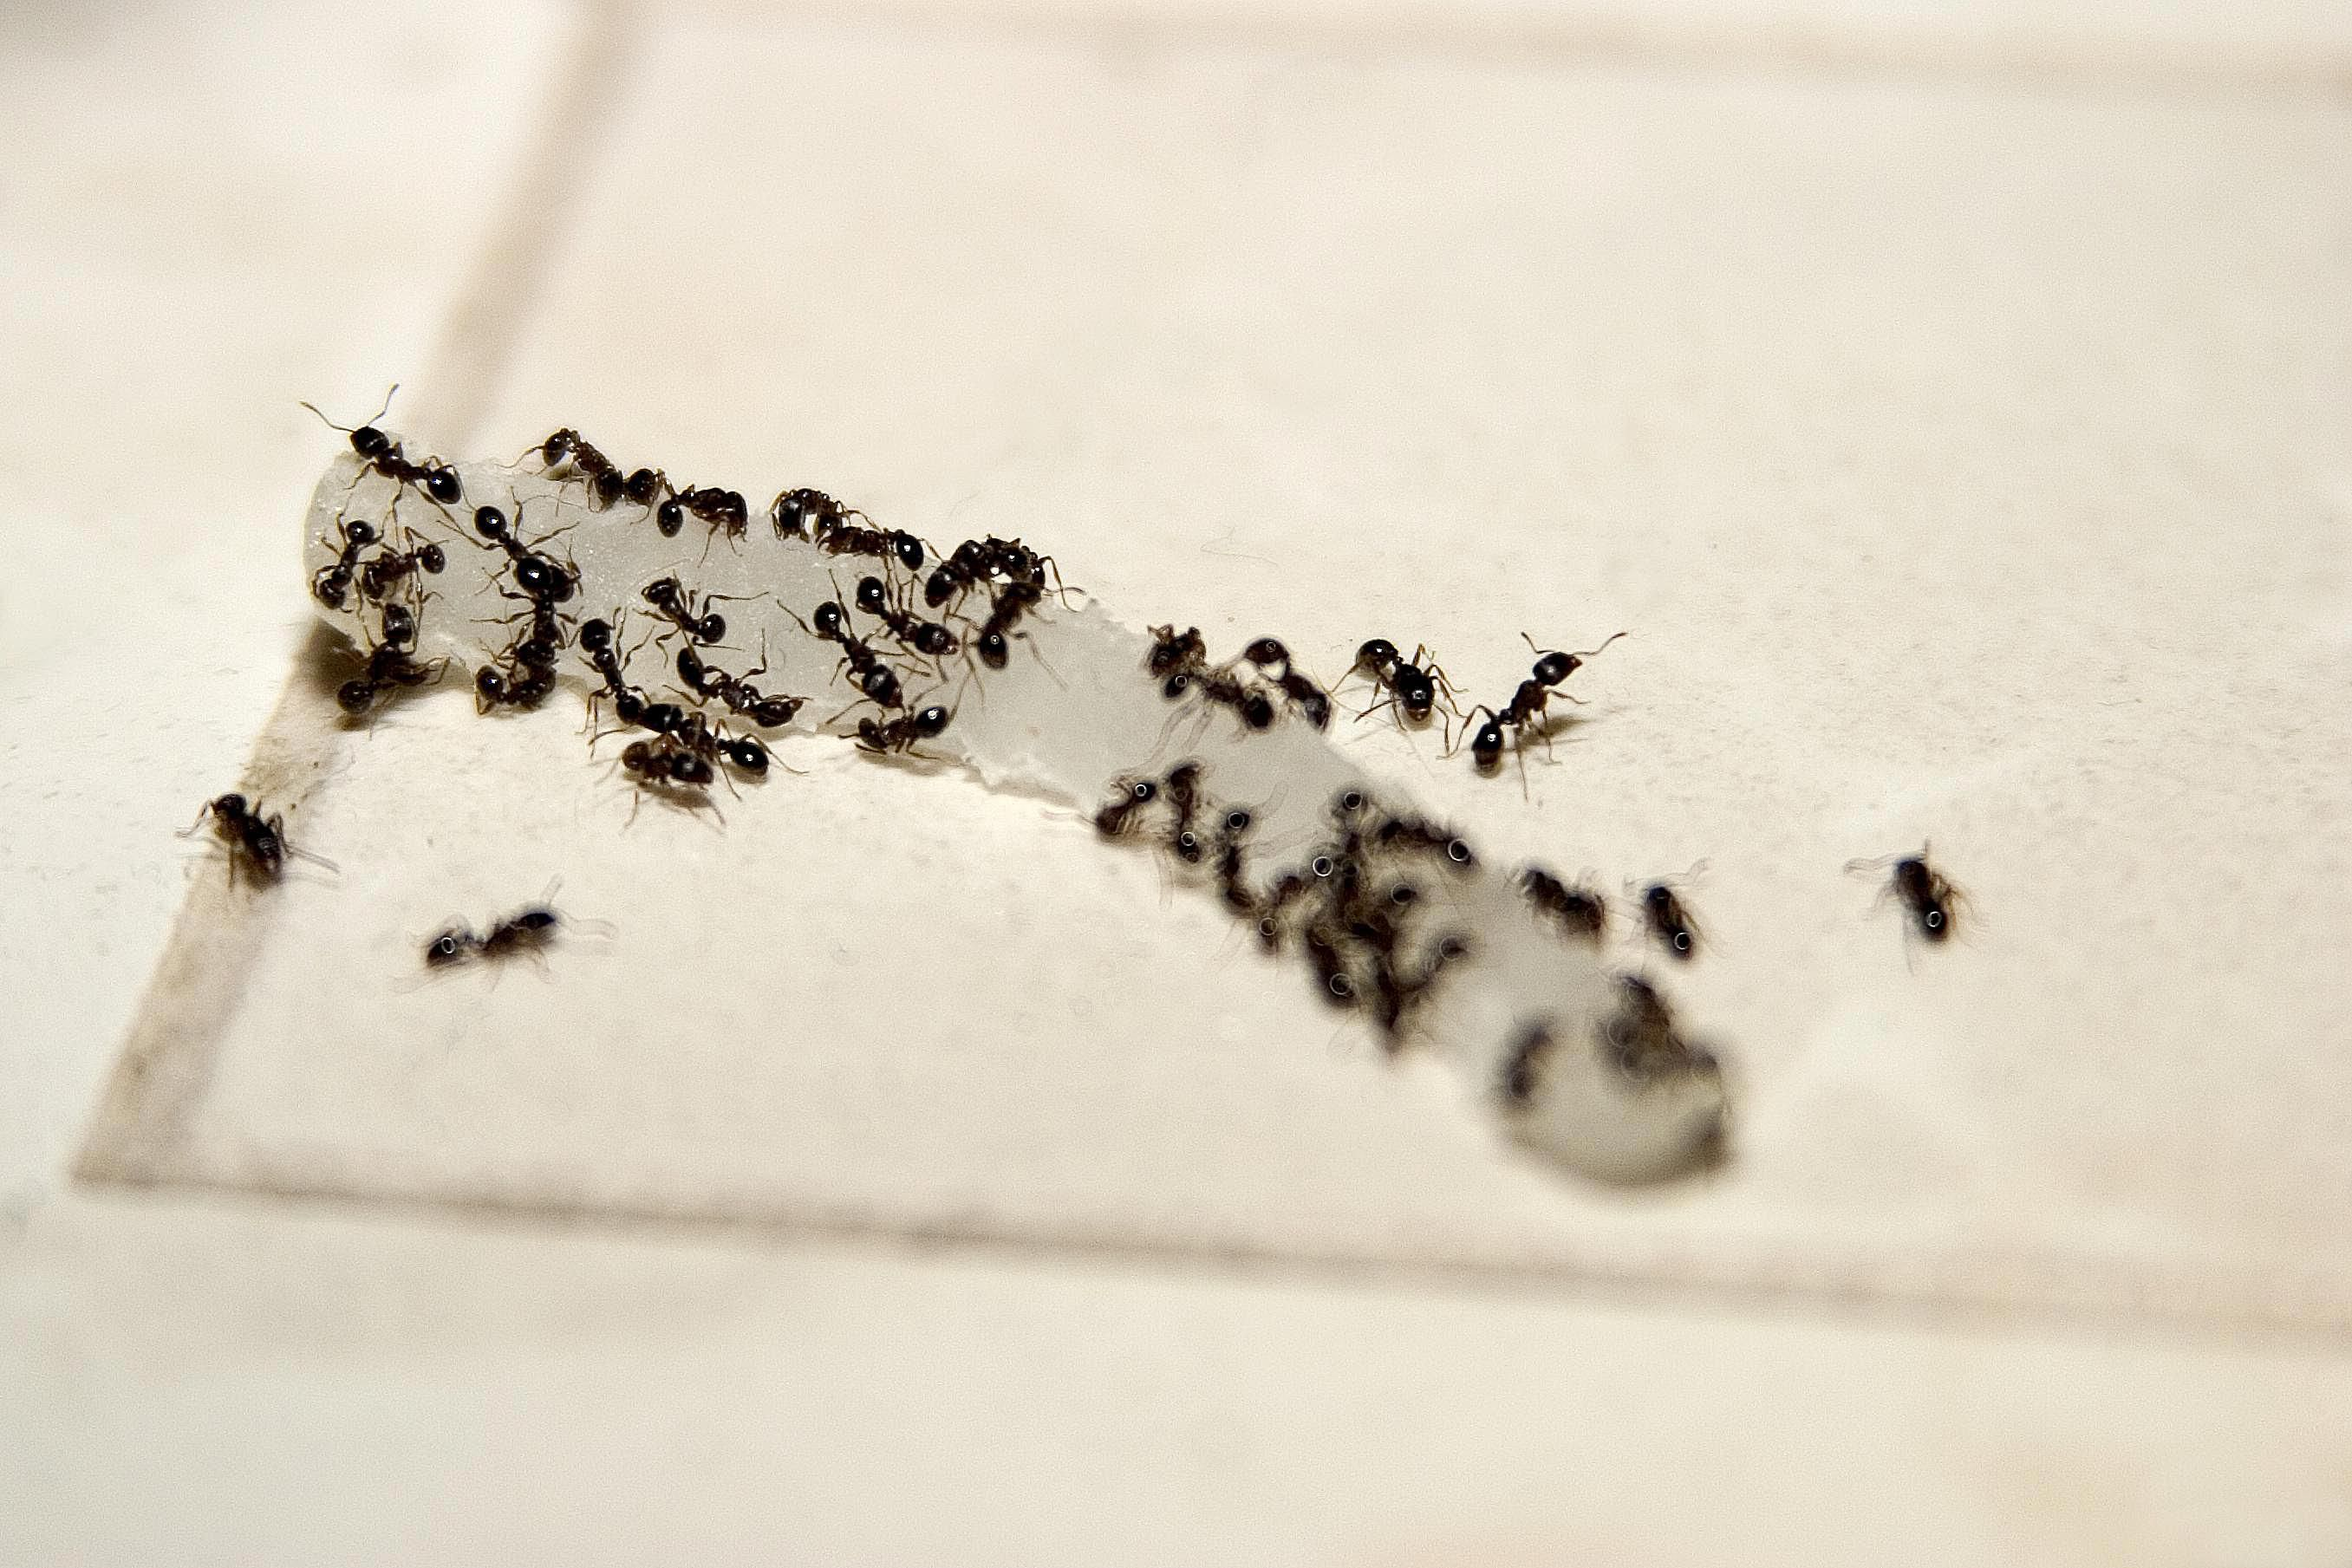 9 simple steps to get rid of ants and keep ants out